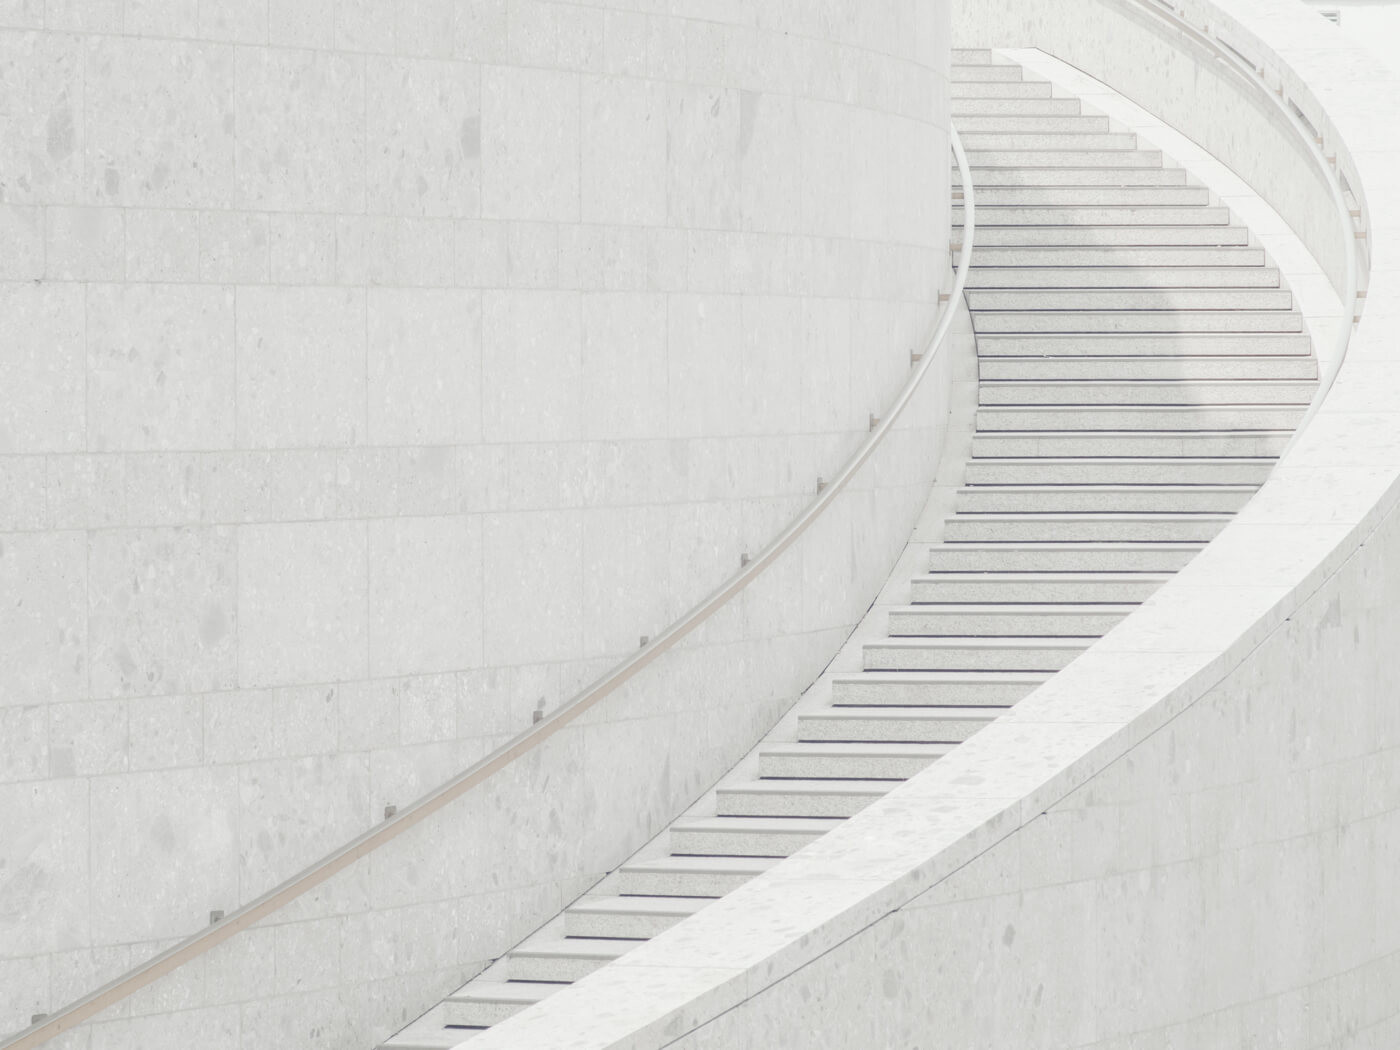 white steps on white ground